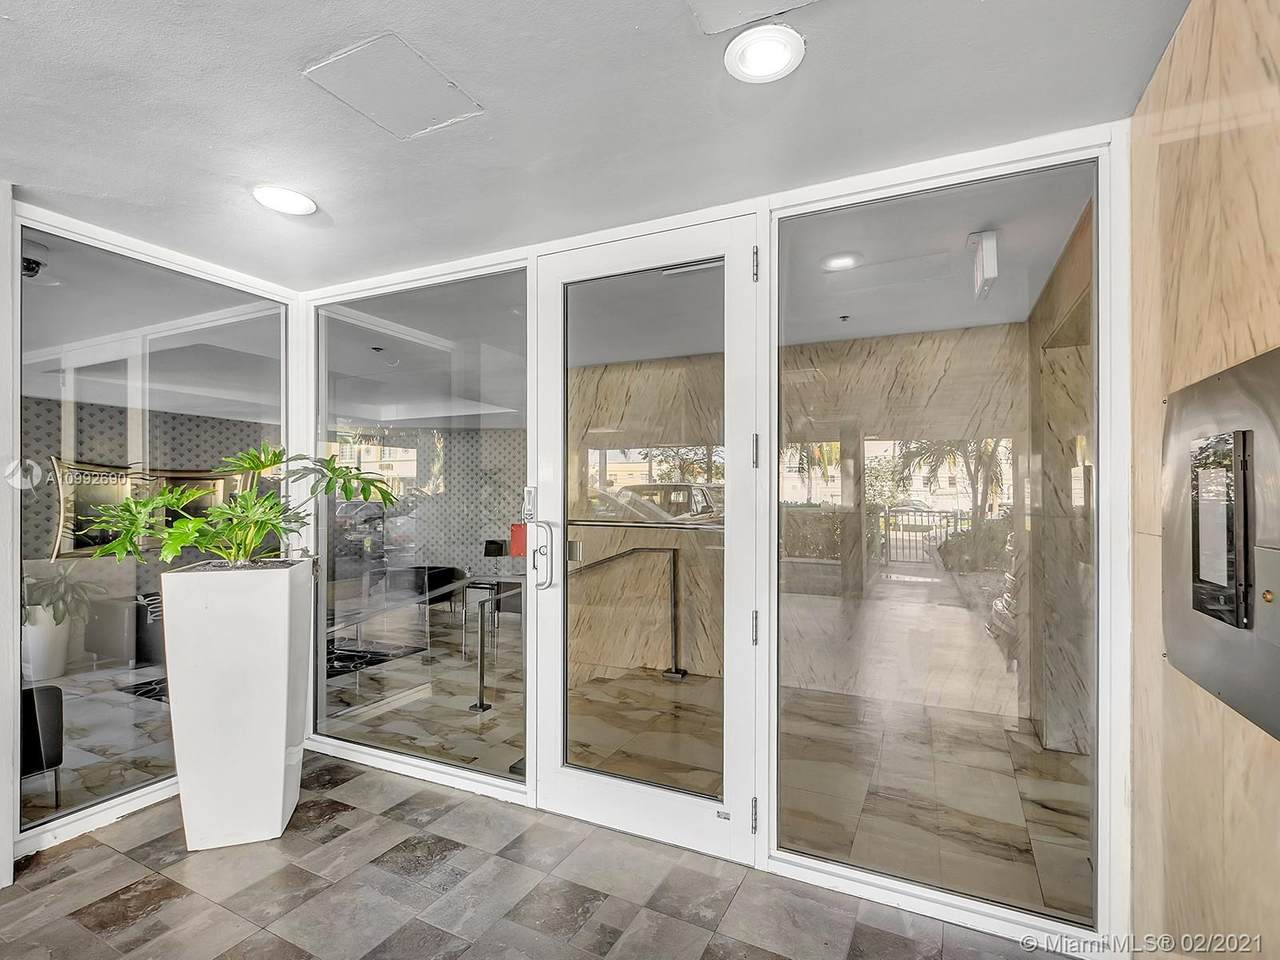 https://bt-photos.global.ssl.fastly.net/miami/1280_boomver_3_A10992690-2.jpg